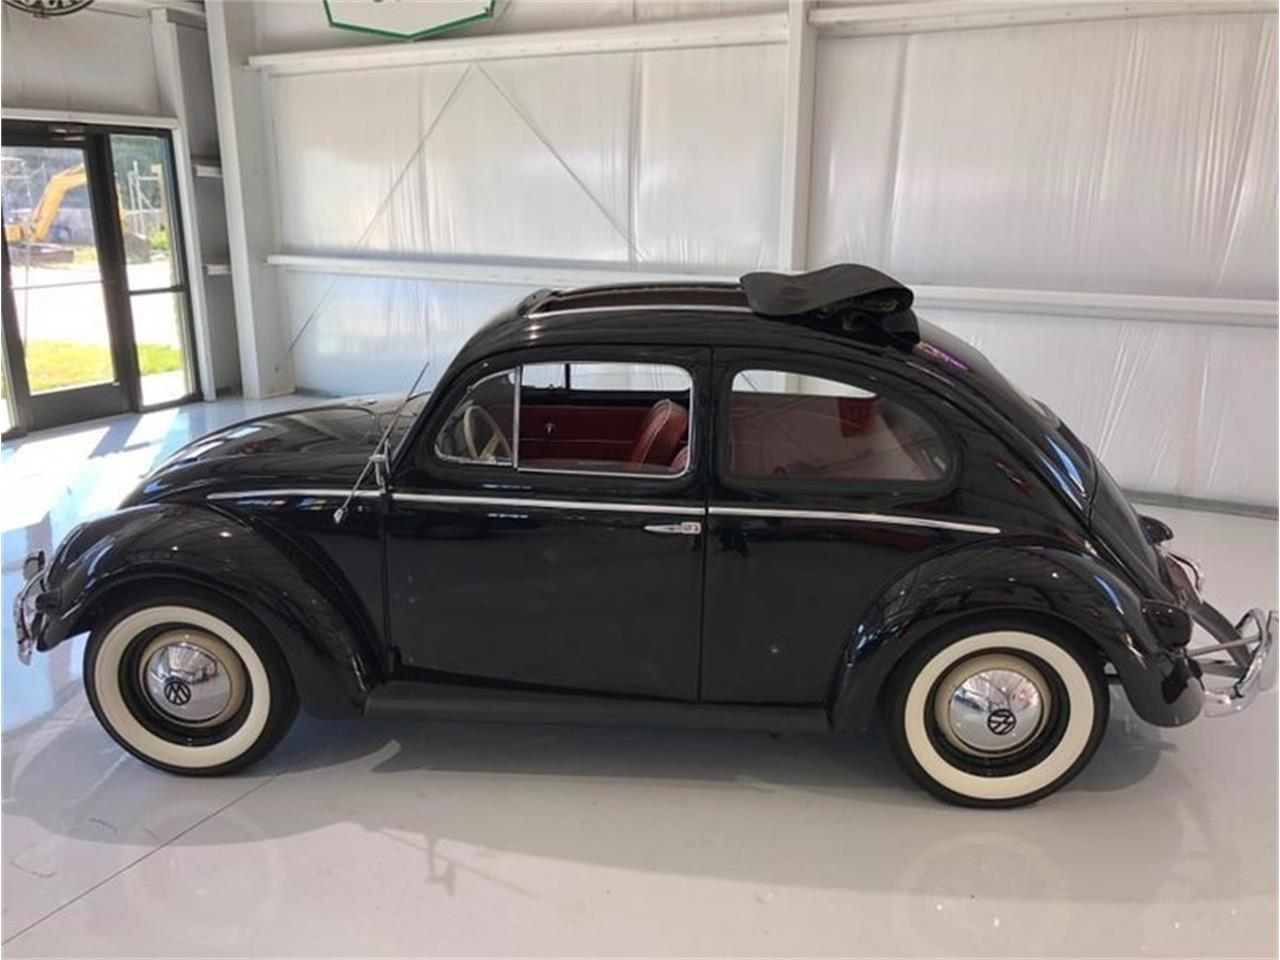 Large Picture of '56 Volkswagen Beetle located in Florida Auction Vehicle Offered by Premier Auction Group - NKI3